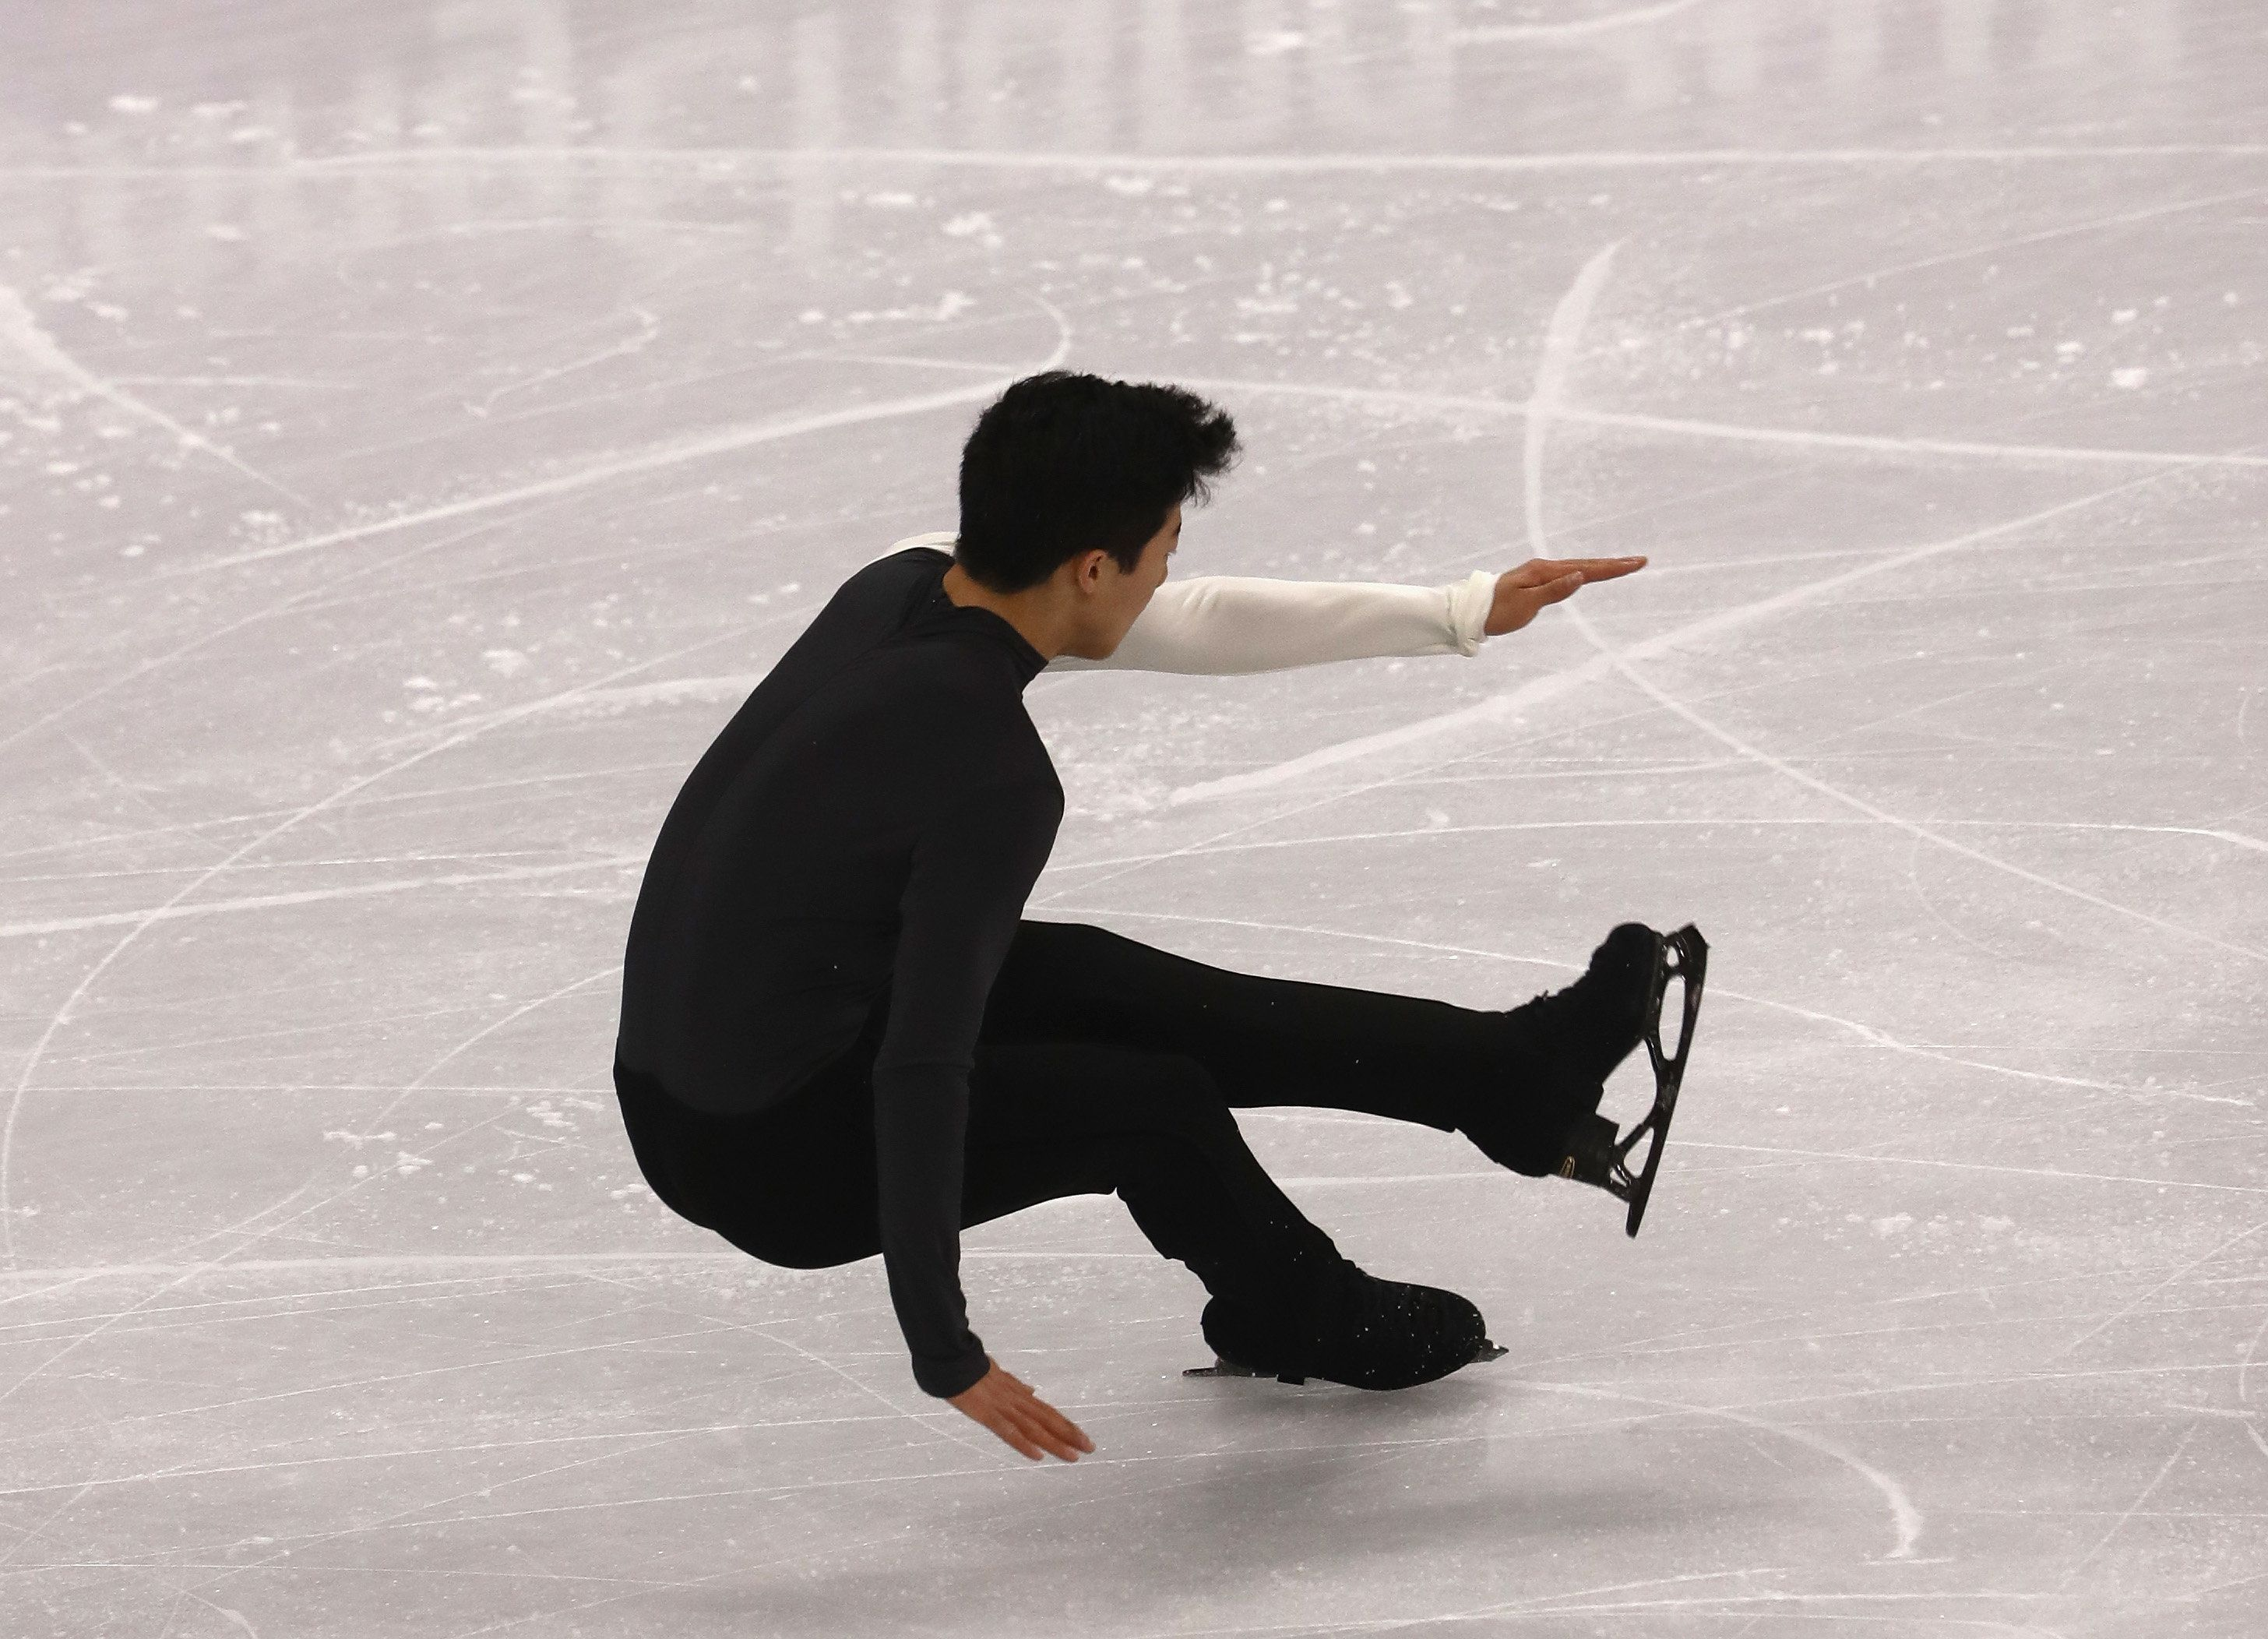 Robert Cianflone via Getty Images The mistakes kept adding up in the men's short program for Nathan Chen who's competing in his first Winter Olympics